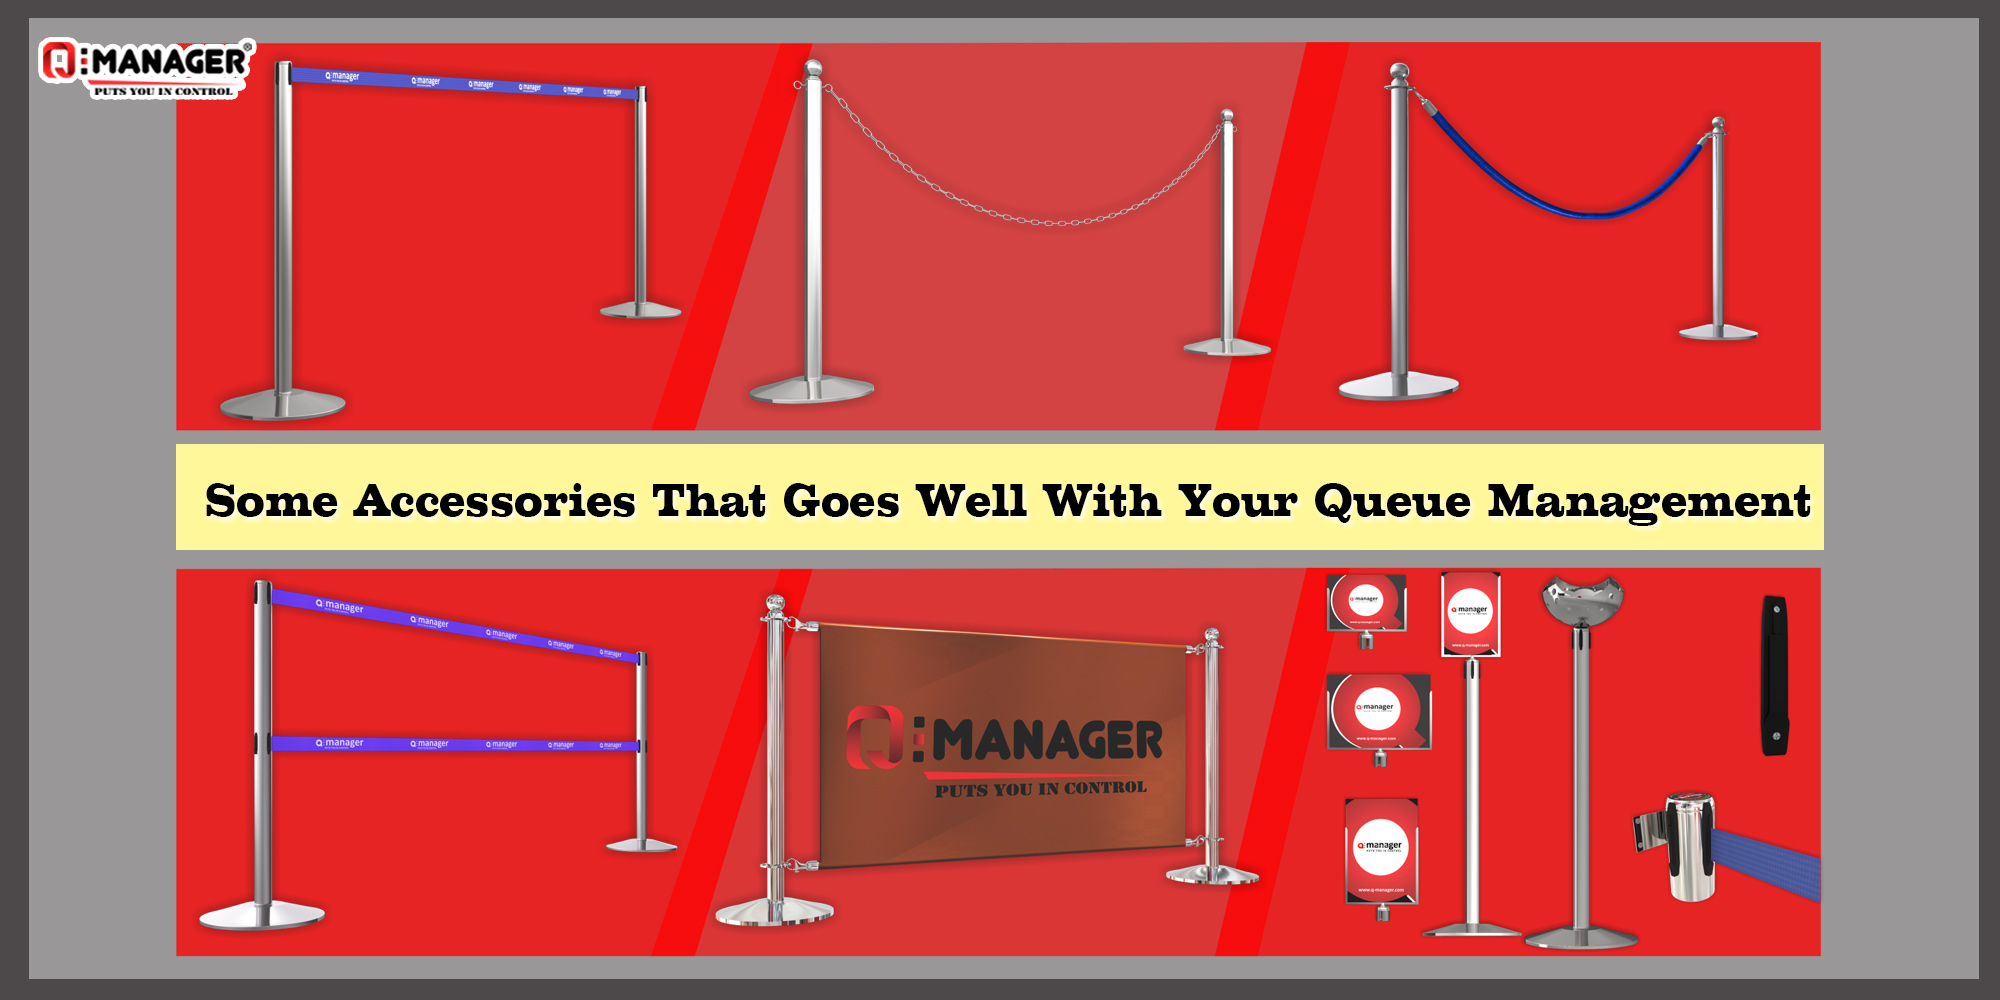 Some Accessories That Goes Well With Your Queue Management